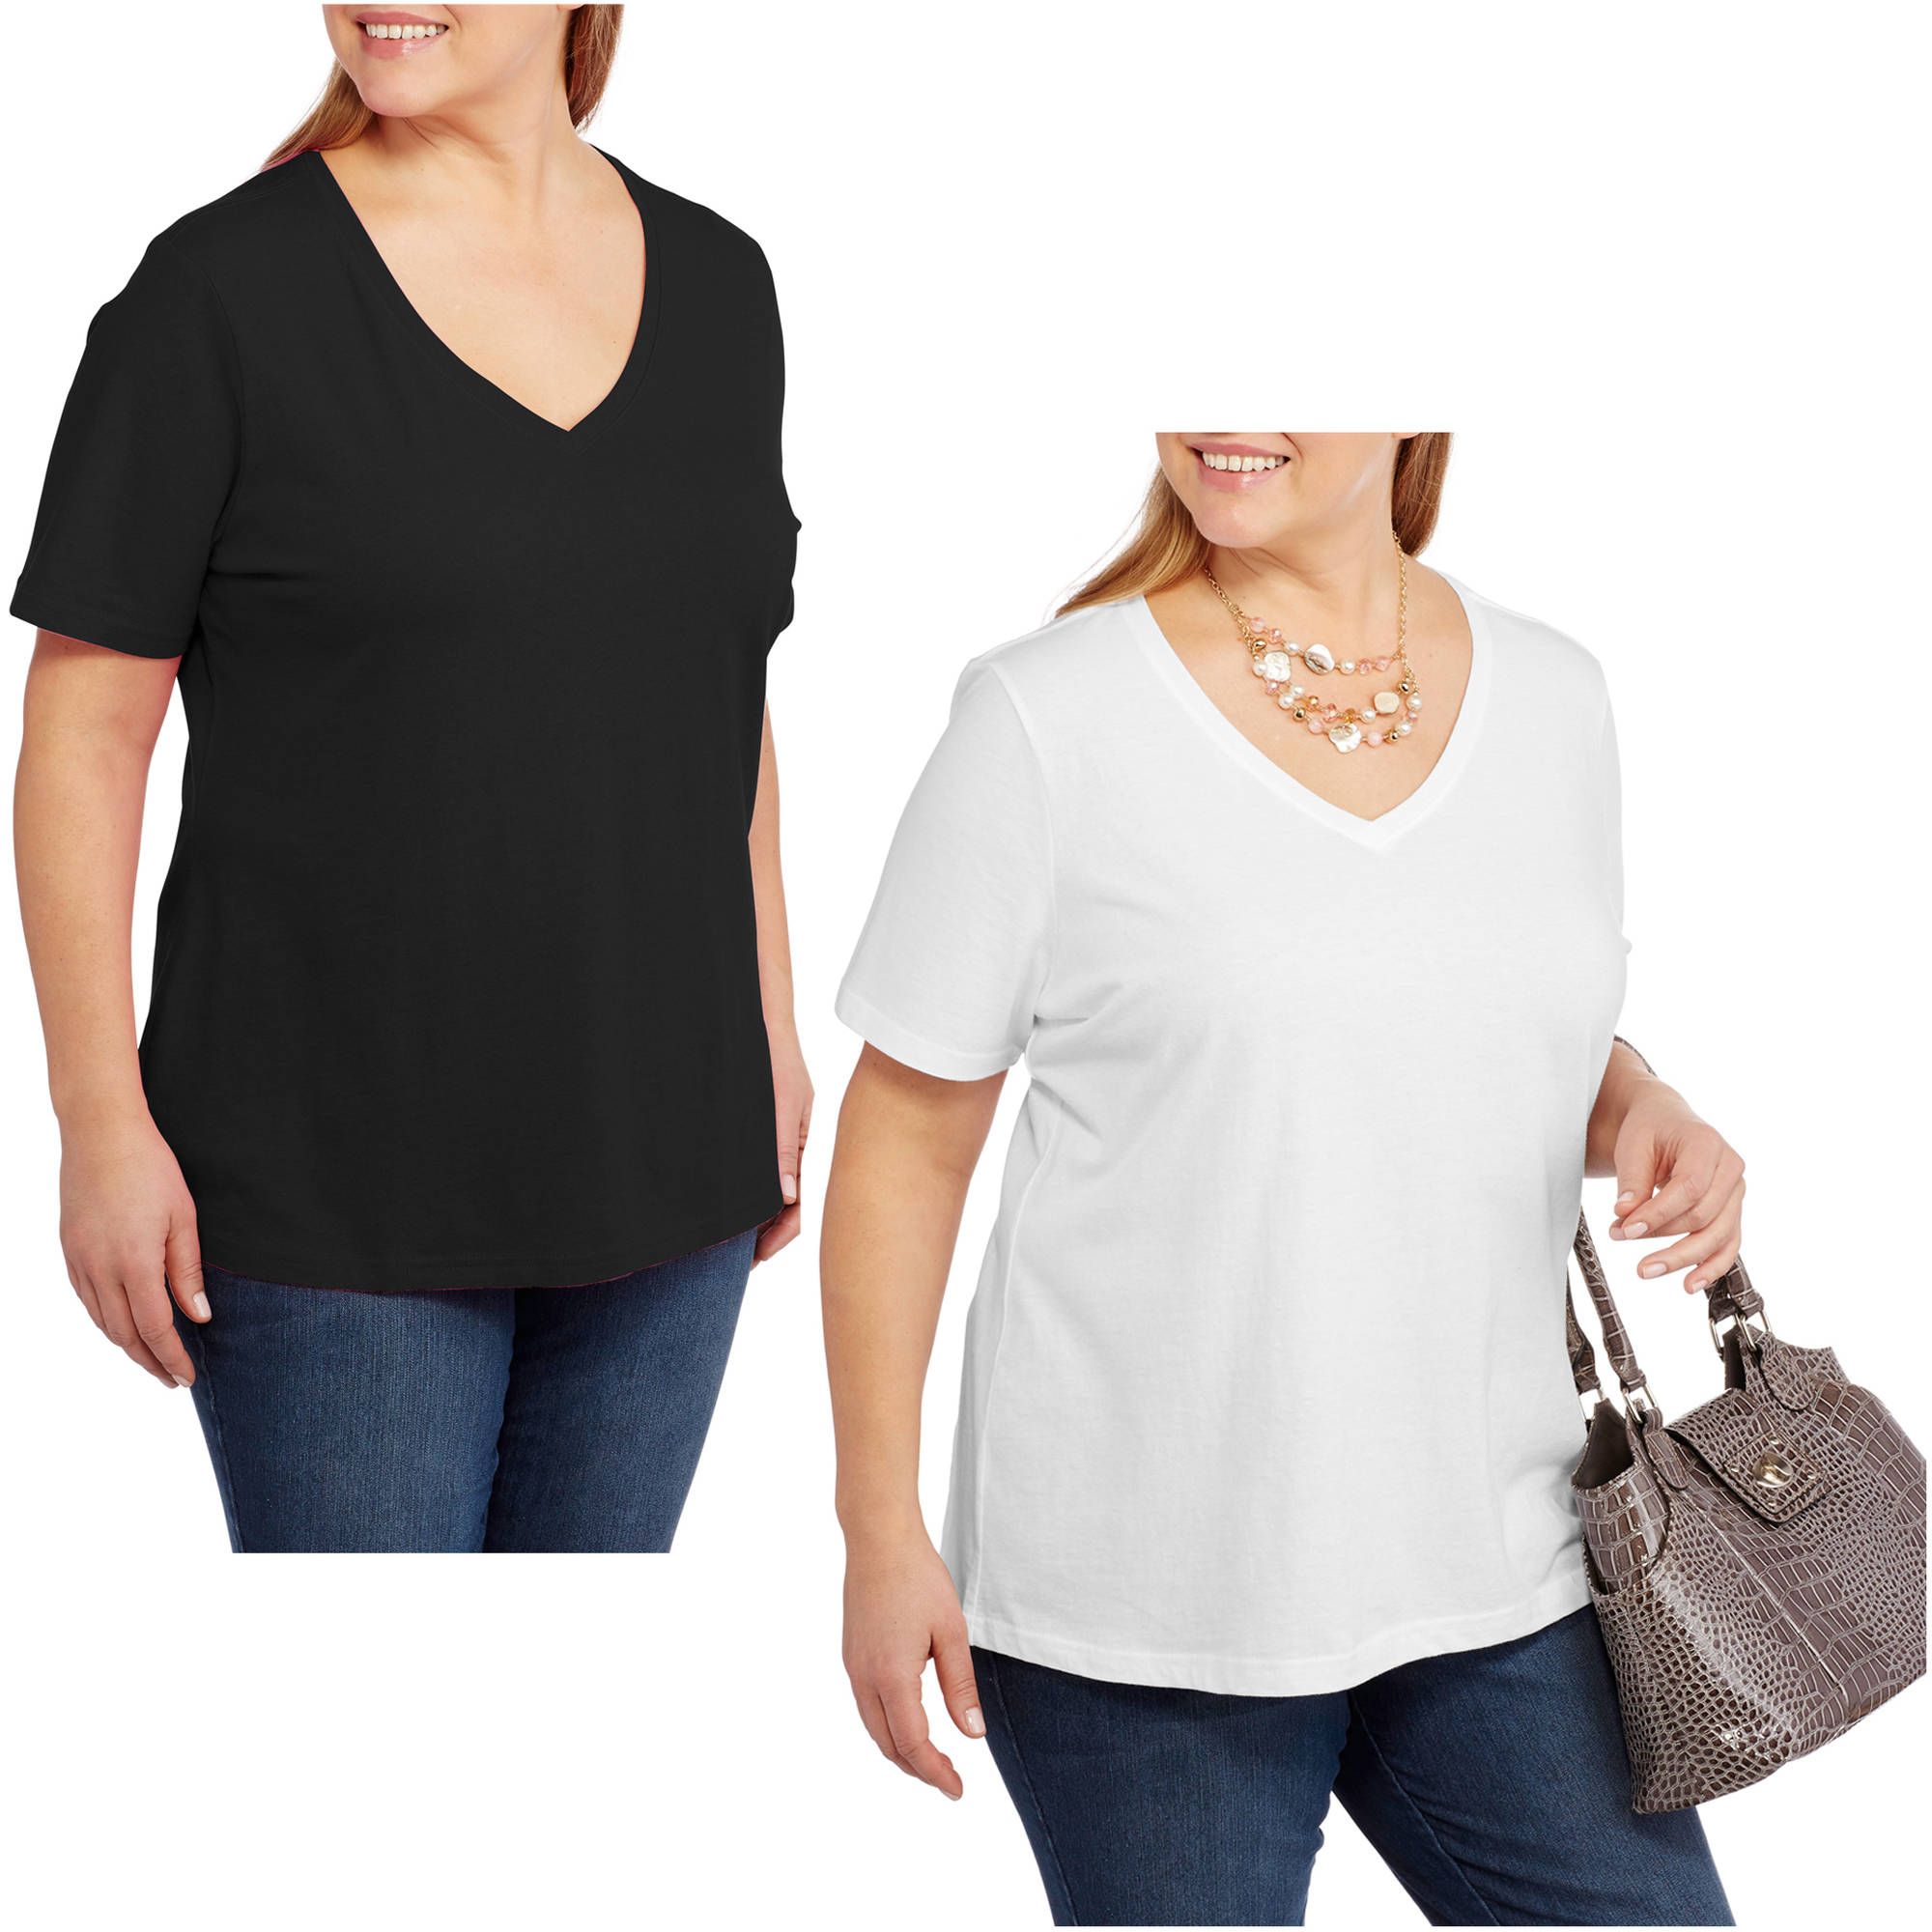 Faded Glory Women's Plus-Size Short Sleeve V-Neck Tee, 2 Pack Value Bundle